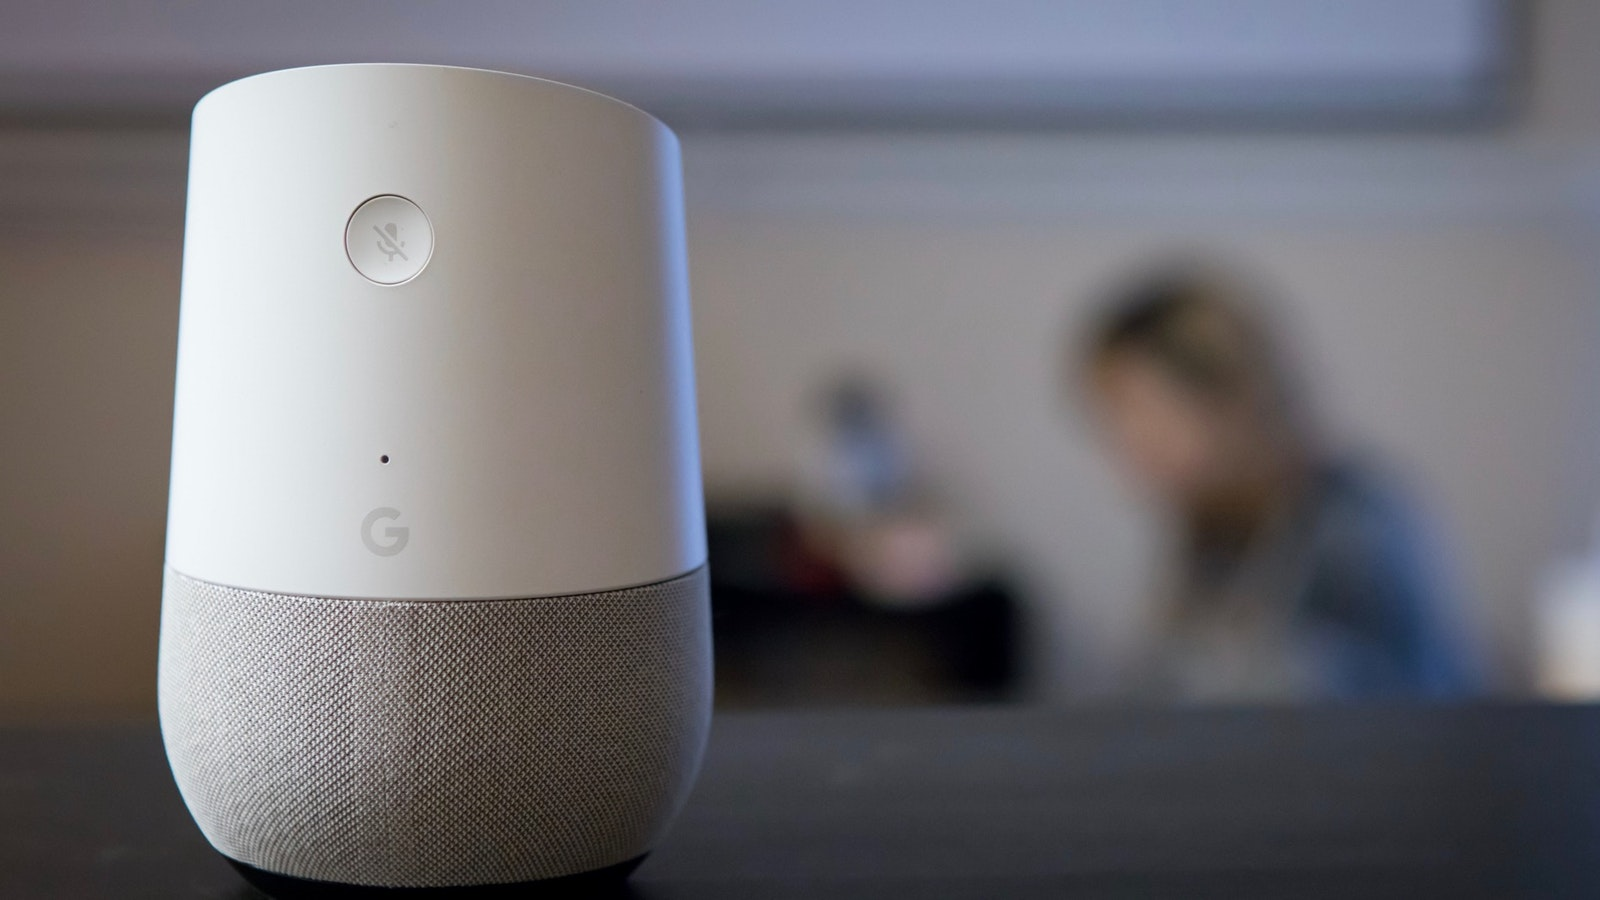 A Google Home speaker. Photo: AP